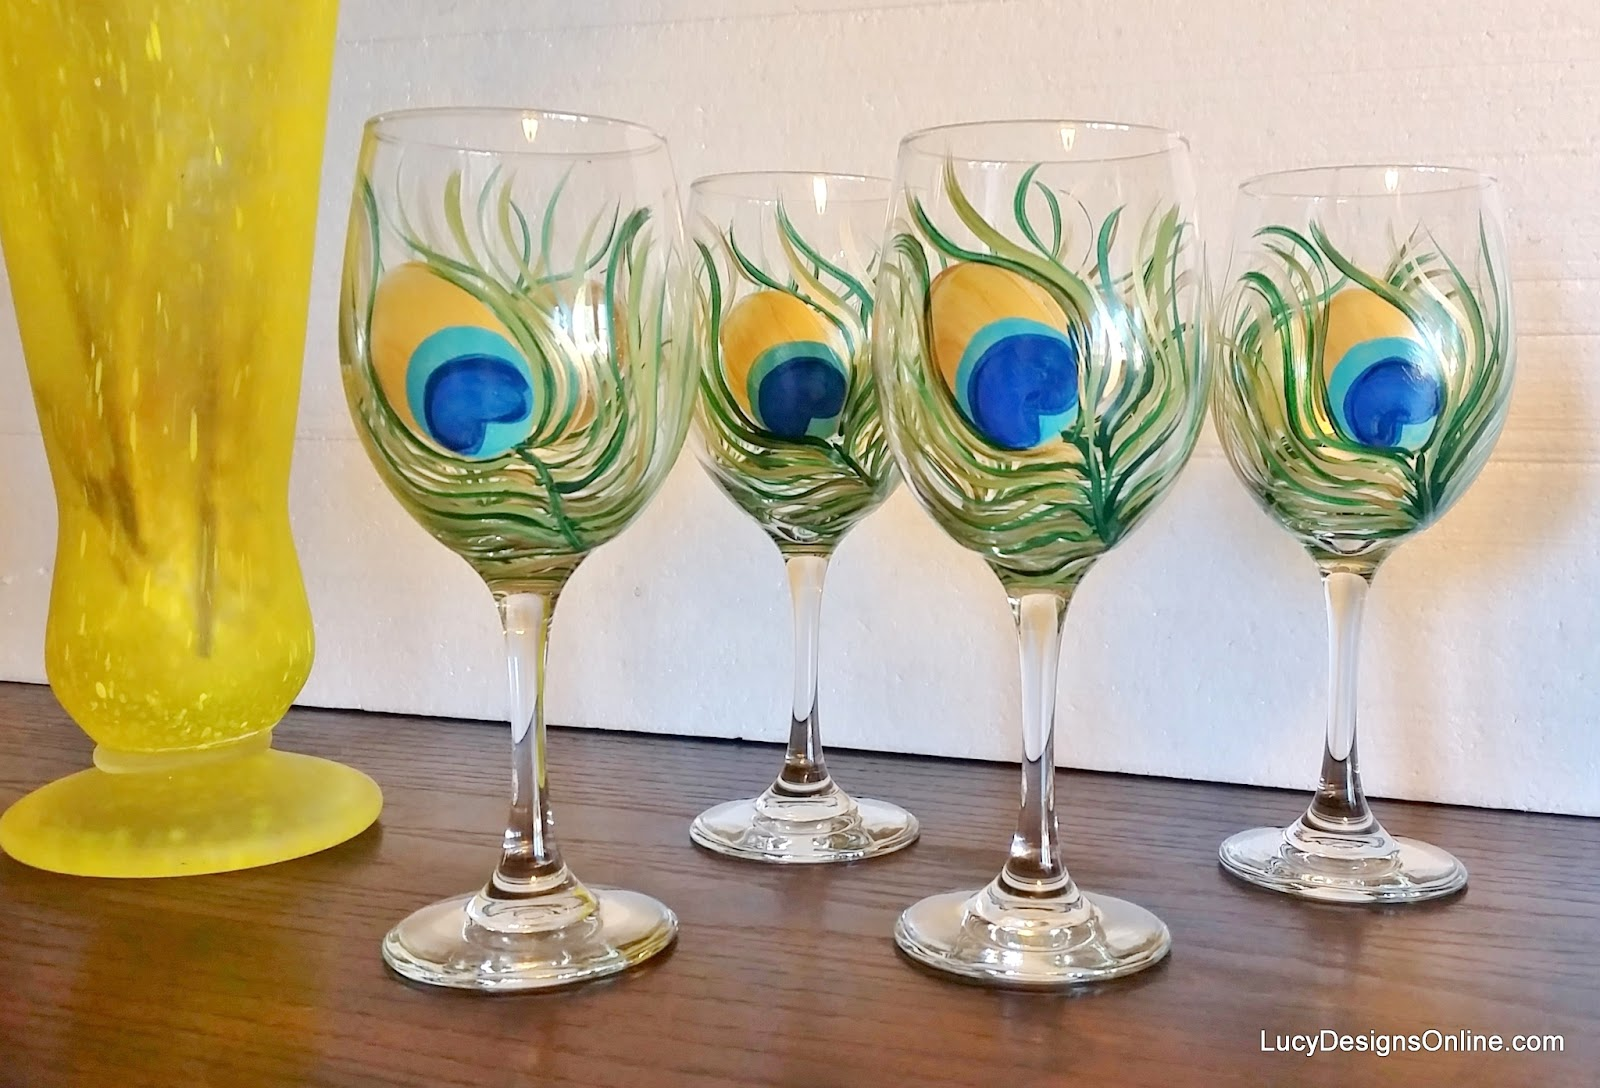 feather wine glasses tutorial diy painted wine glasses lucy designs - Wine Glass Design Ideas